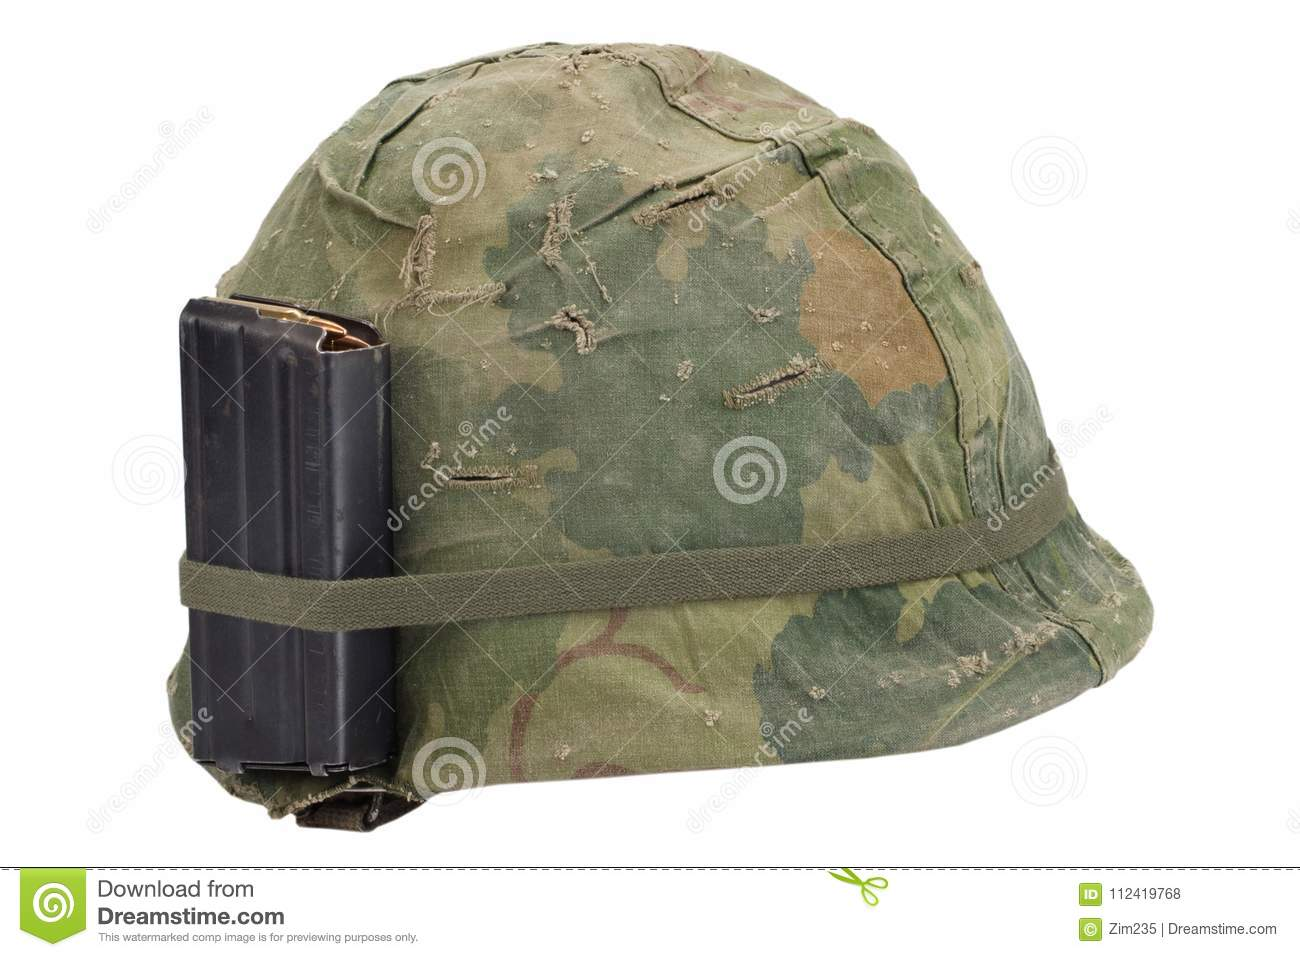 US Army helmet Vietnam war period with camouflage cover, magazine with ammo isolated